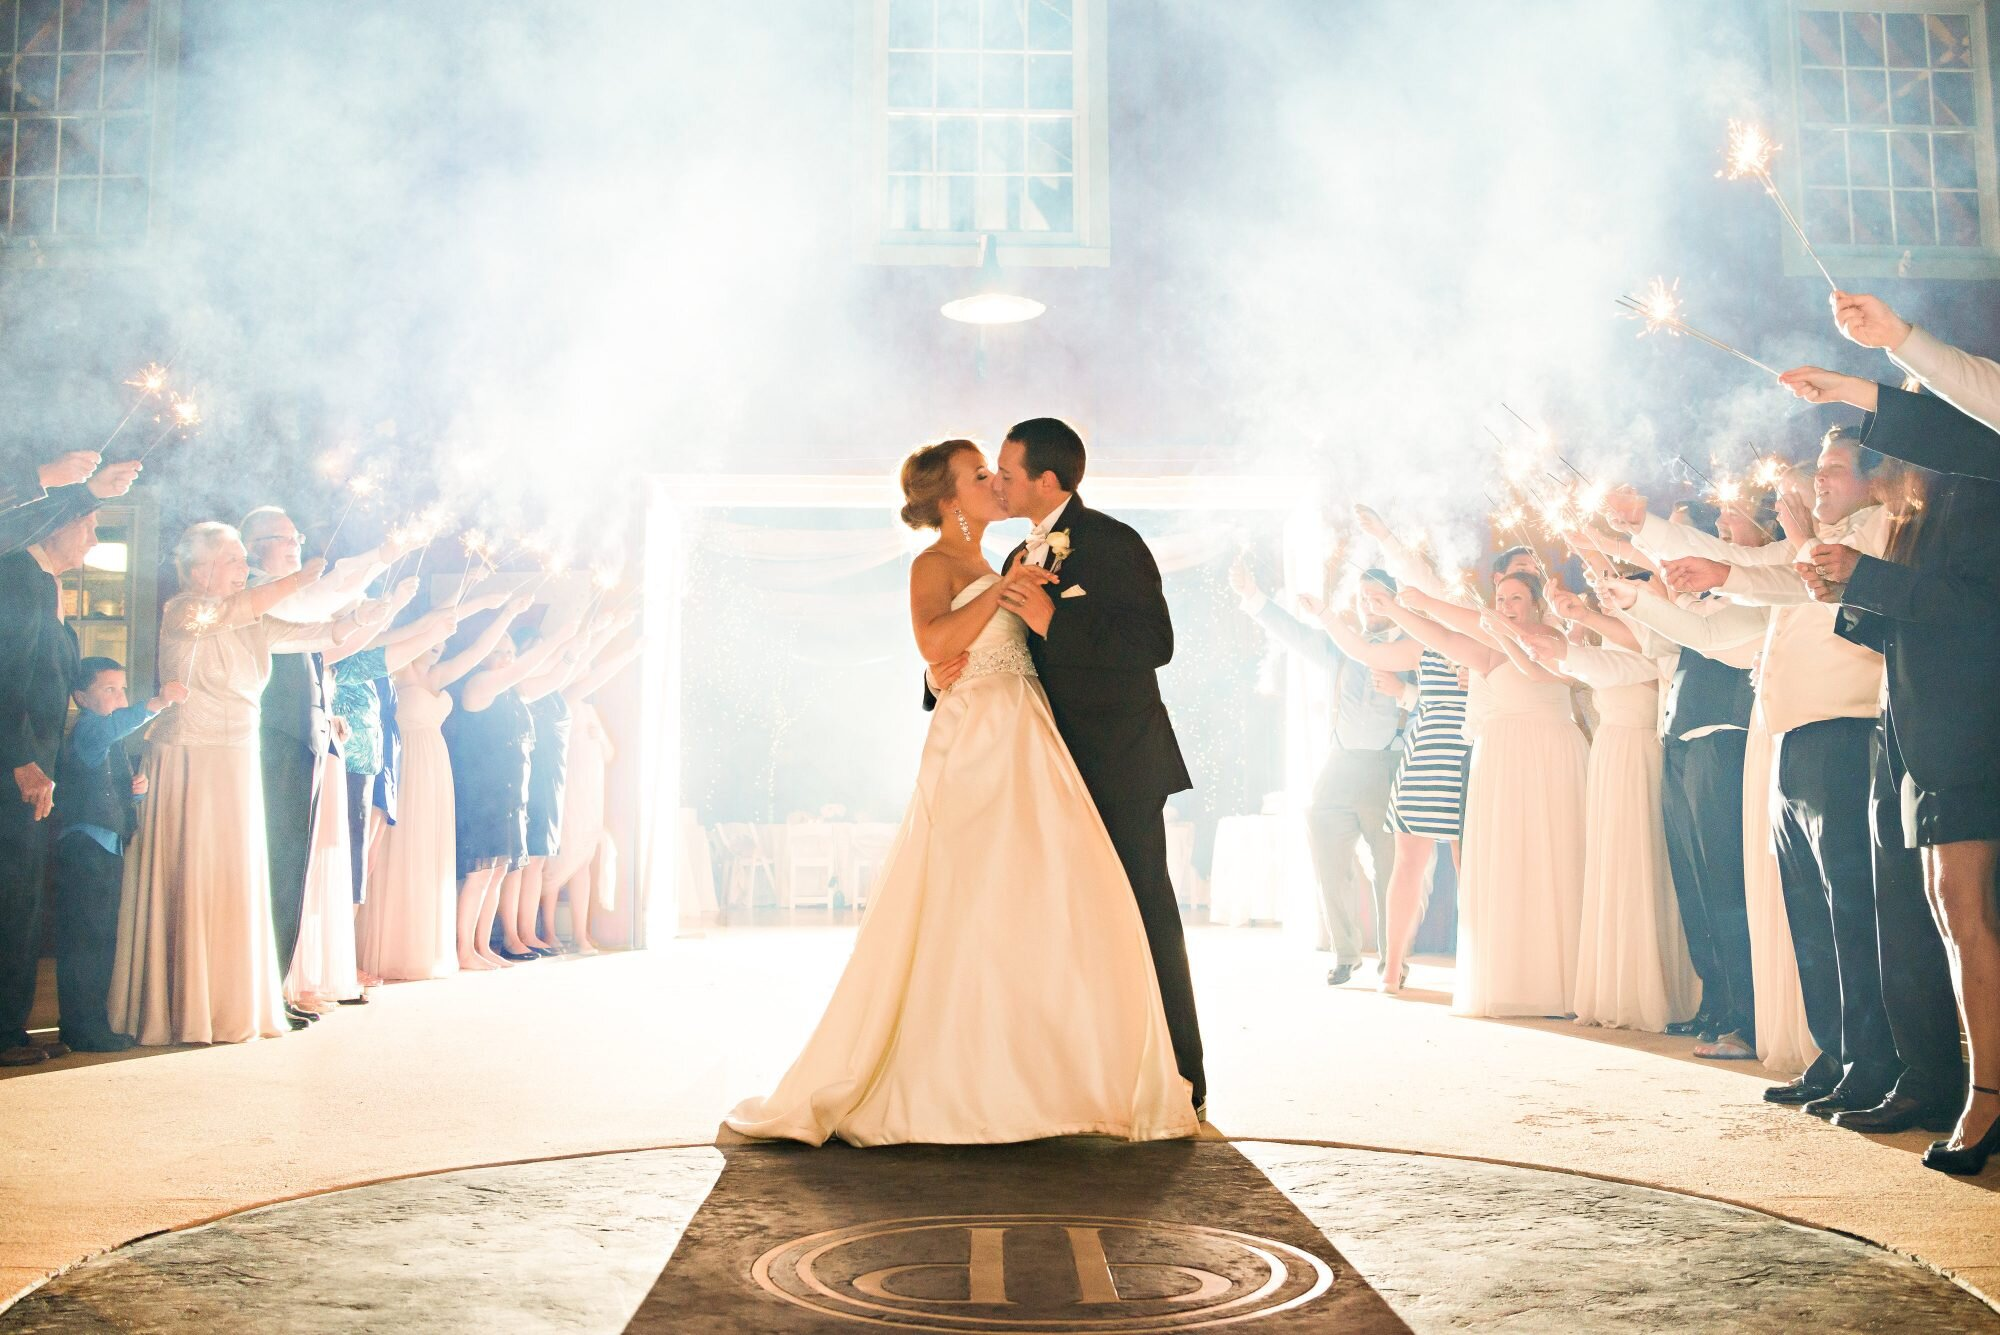 25 Wedding Blessings Prayers And Readings For Your Big Day